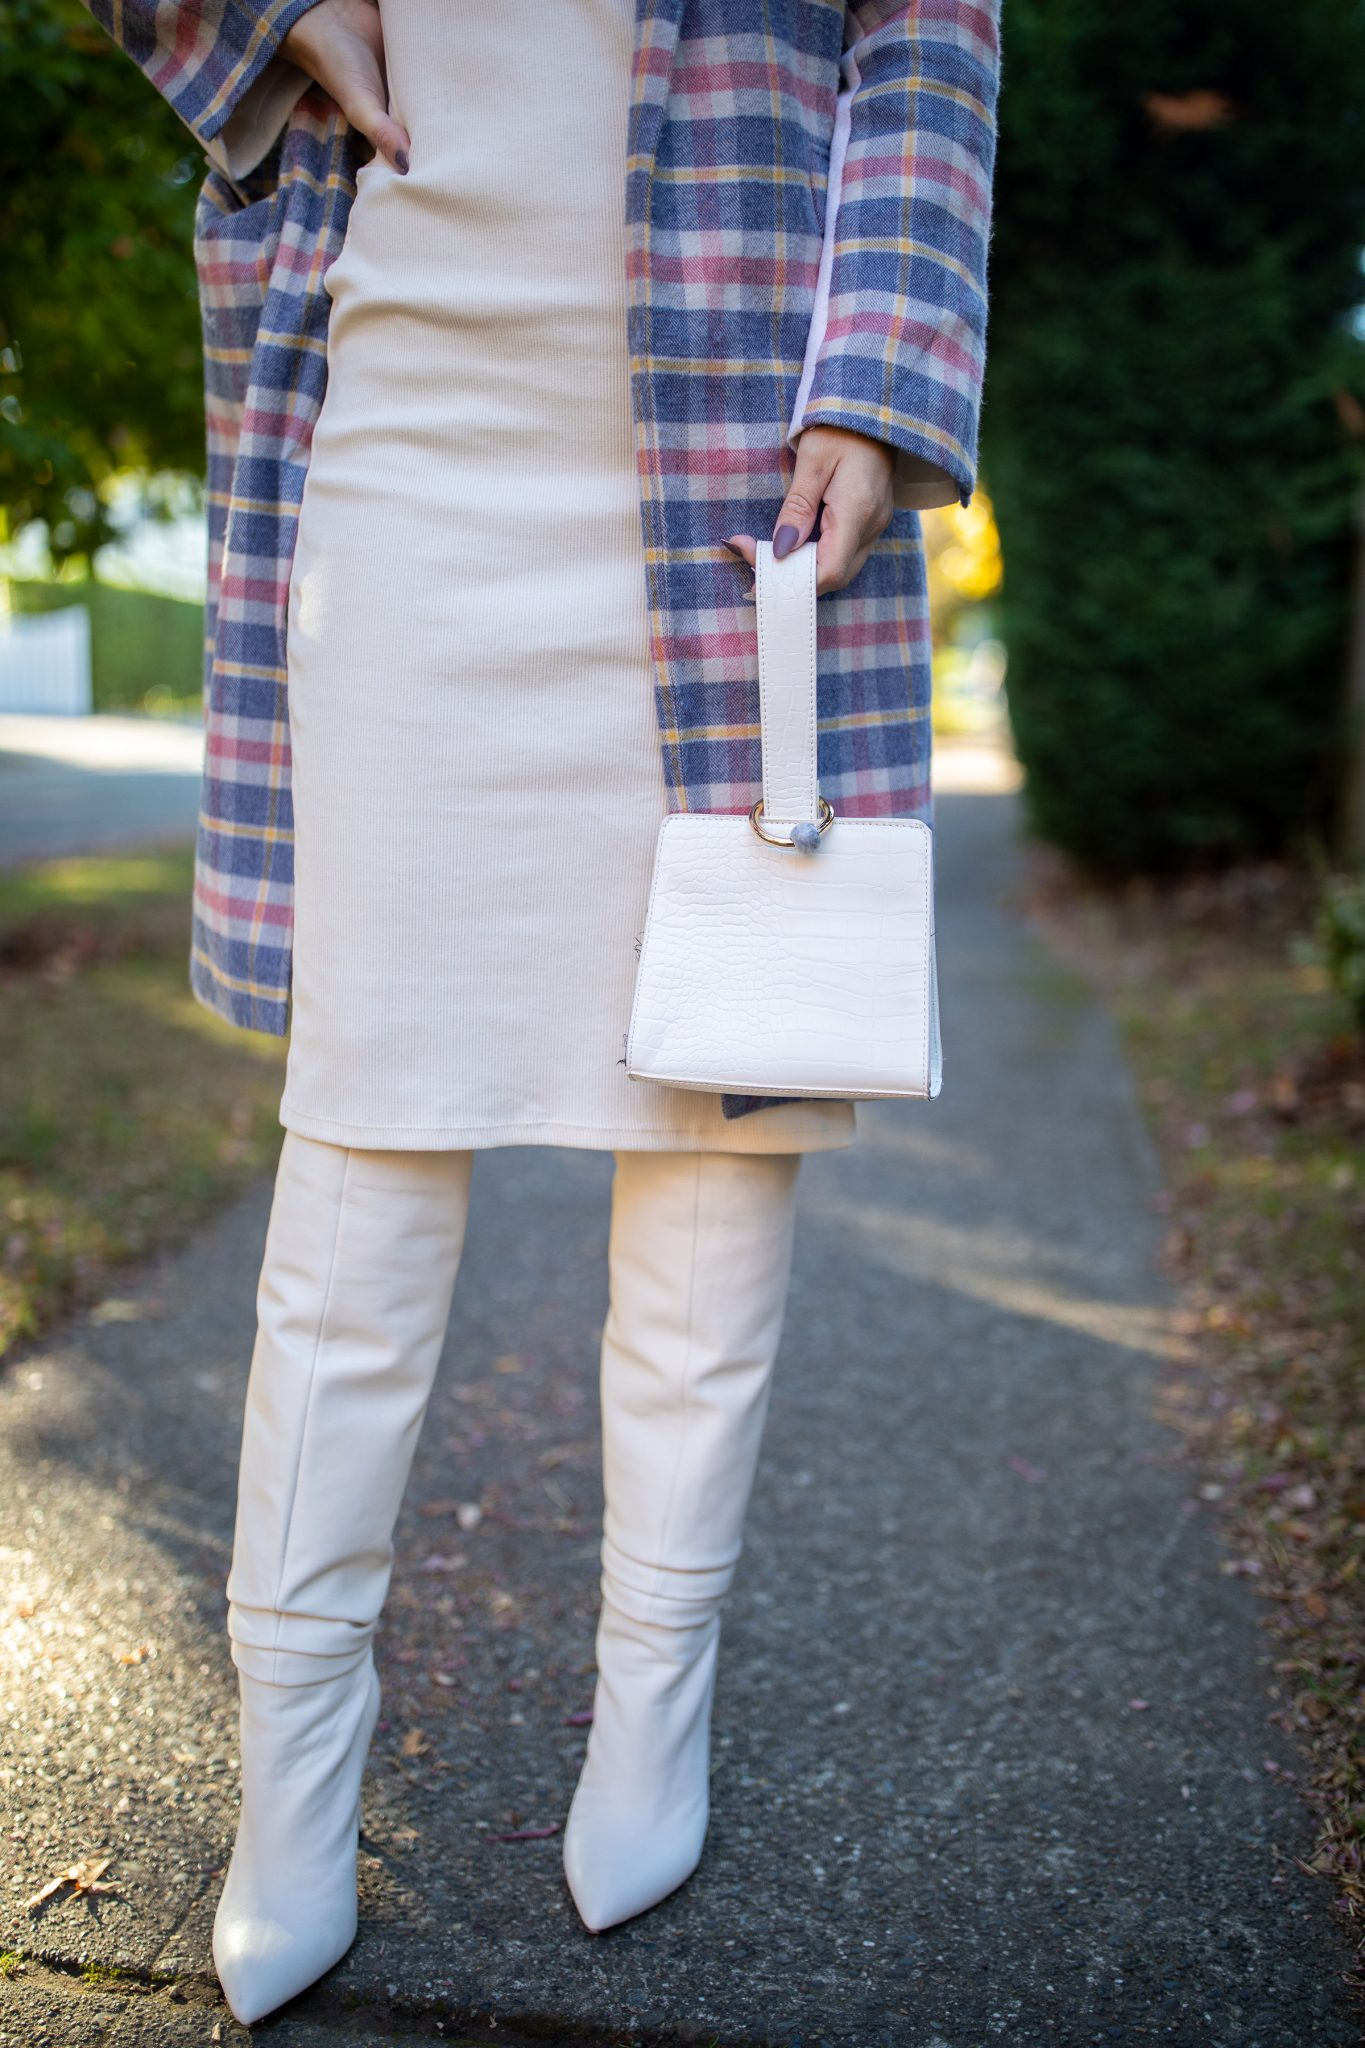 White Dress by popular Seattle tall fashion blog, Whit Wanders: image of a woman standing outside on a sidewalk and wearing a white dress, white otk boots, and a pink, blue, yellow, and white plaid wool jacket.